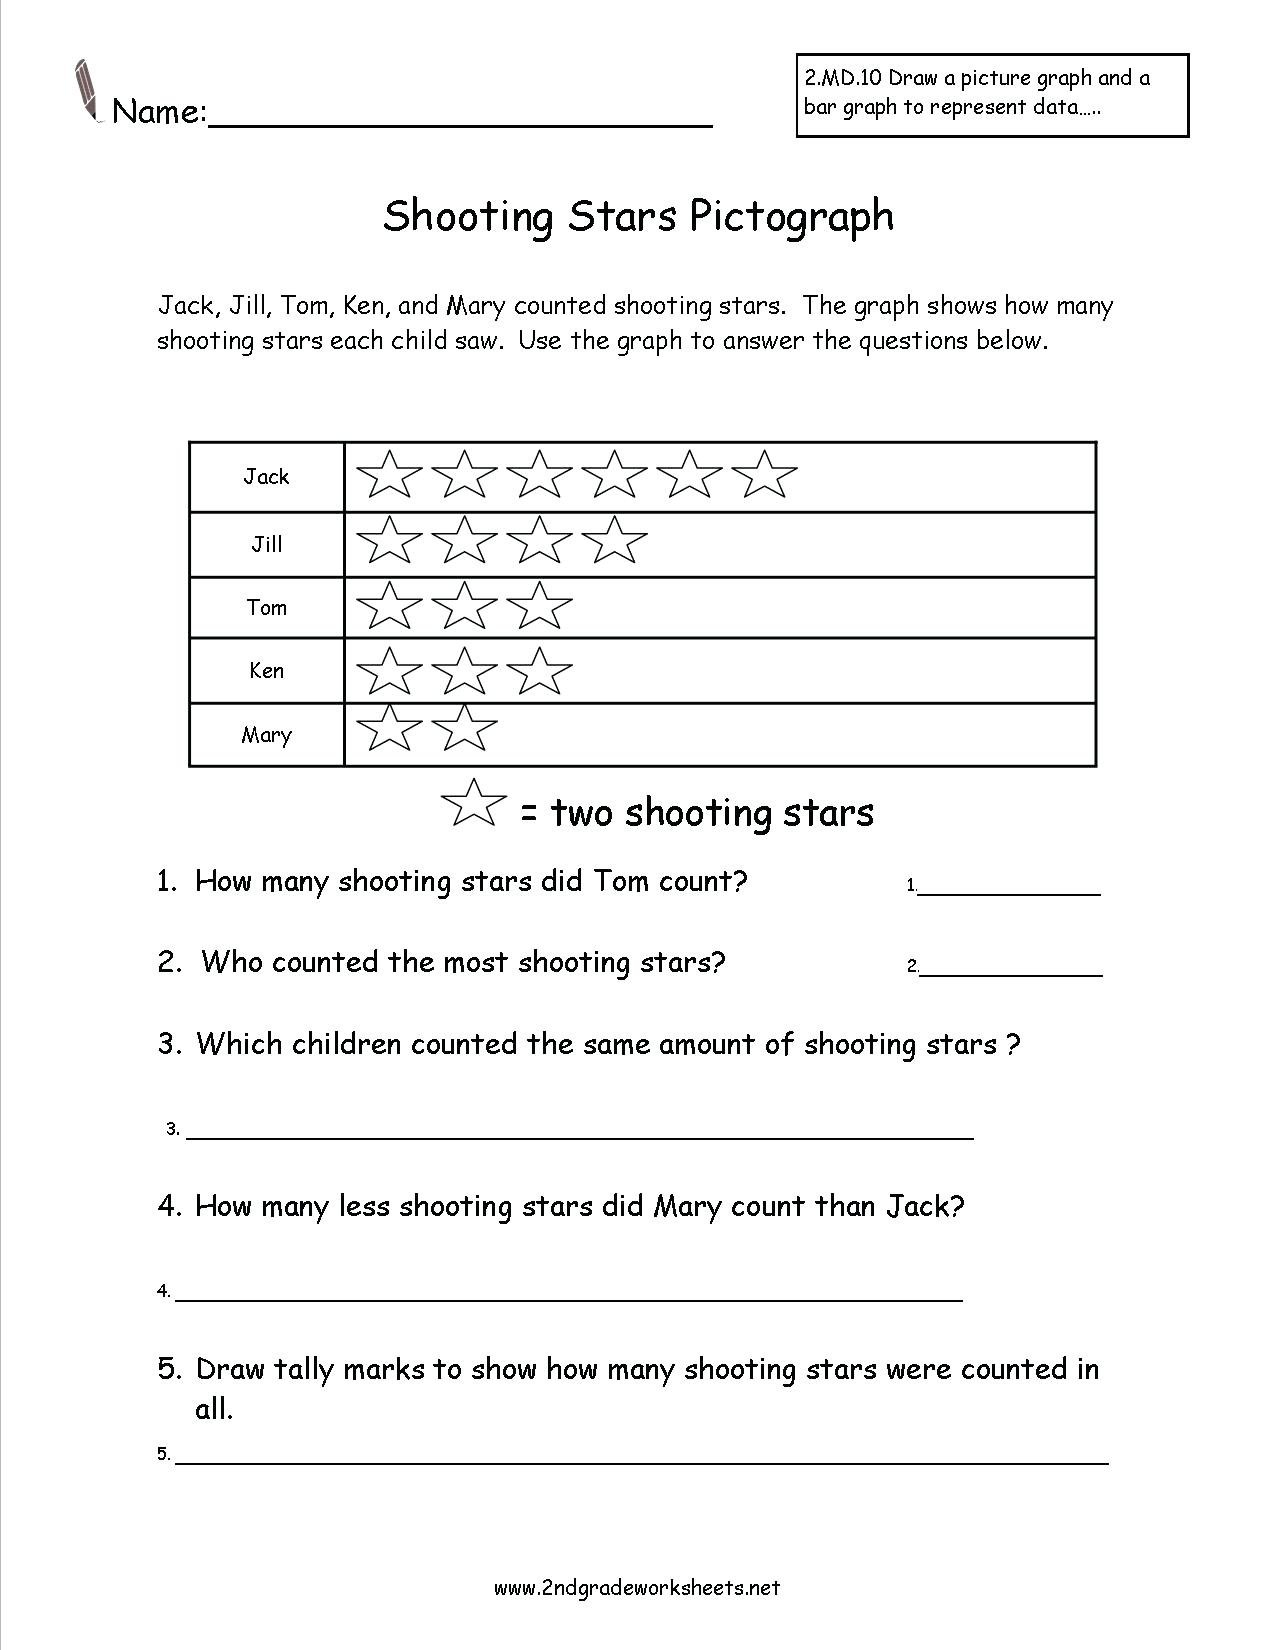 Worksheet Alphabet Phonics Worksheets Times Table Practice Sheets For Social Skills Activities Worksheets